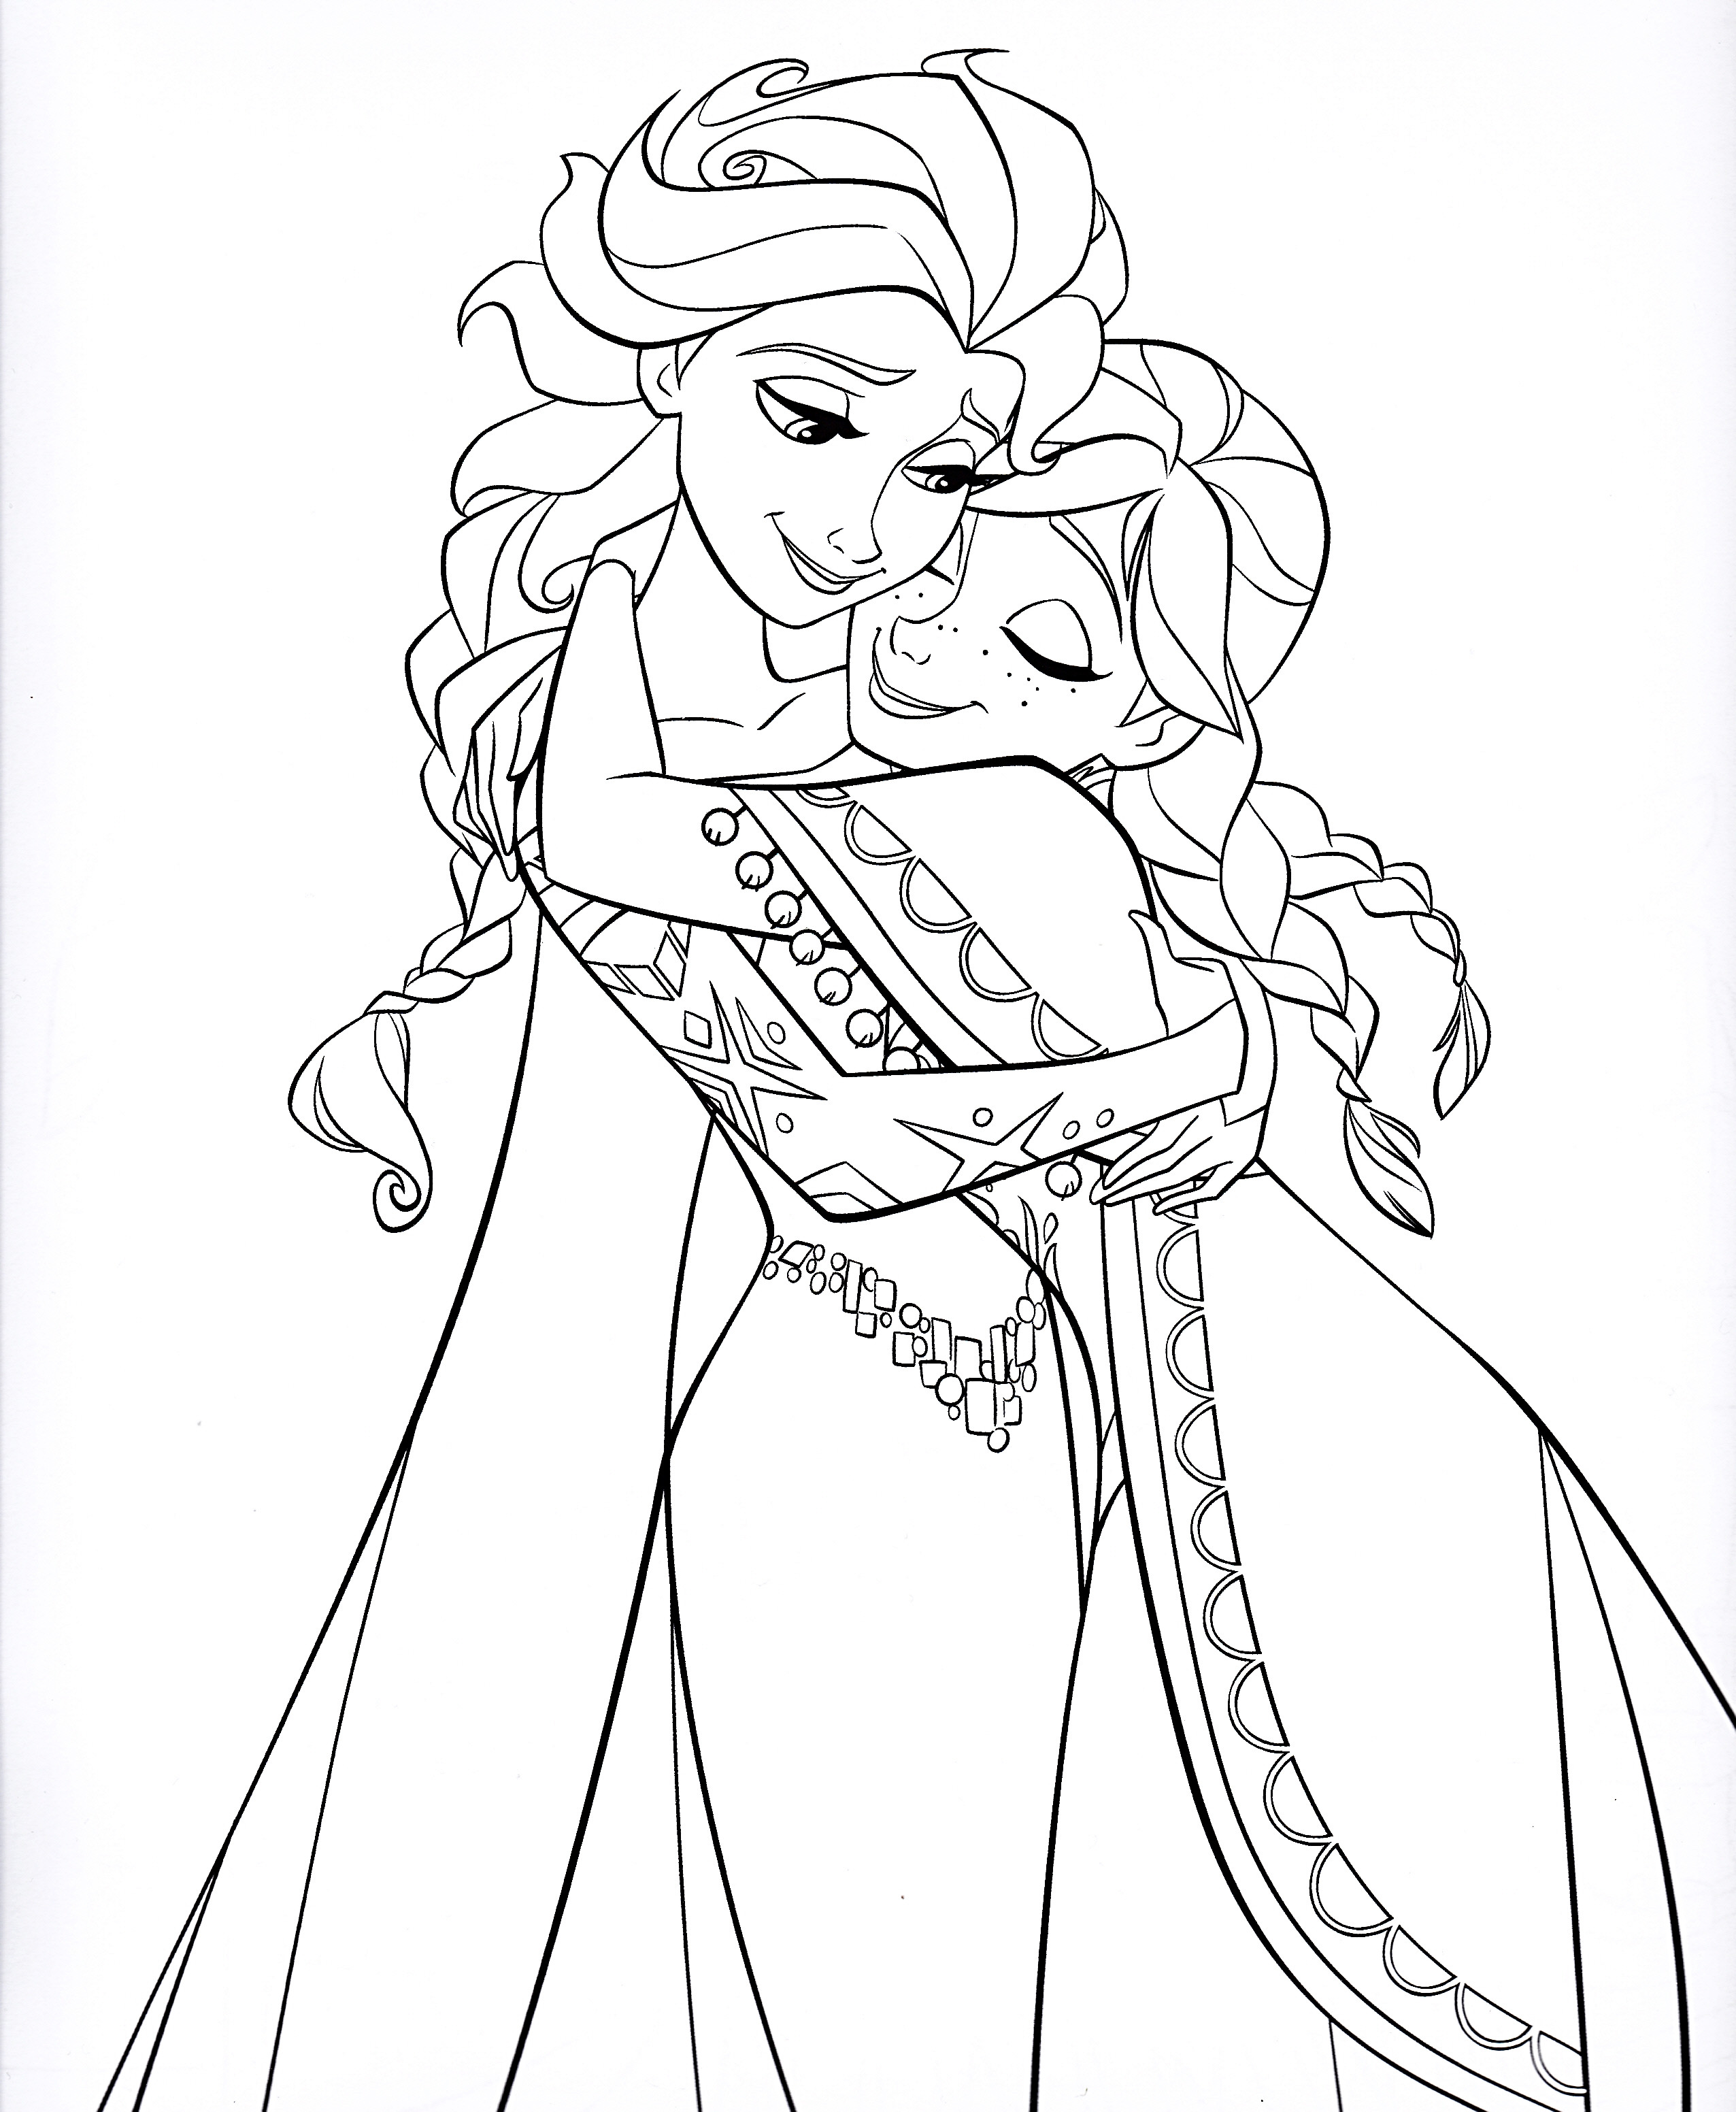 Disney Frozen Coloring Pages  free printable coloring pages disney frozen 2015